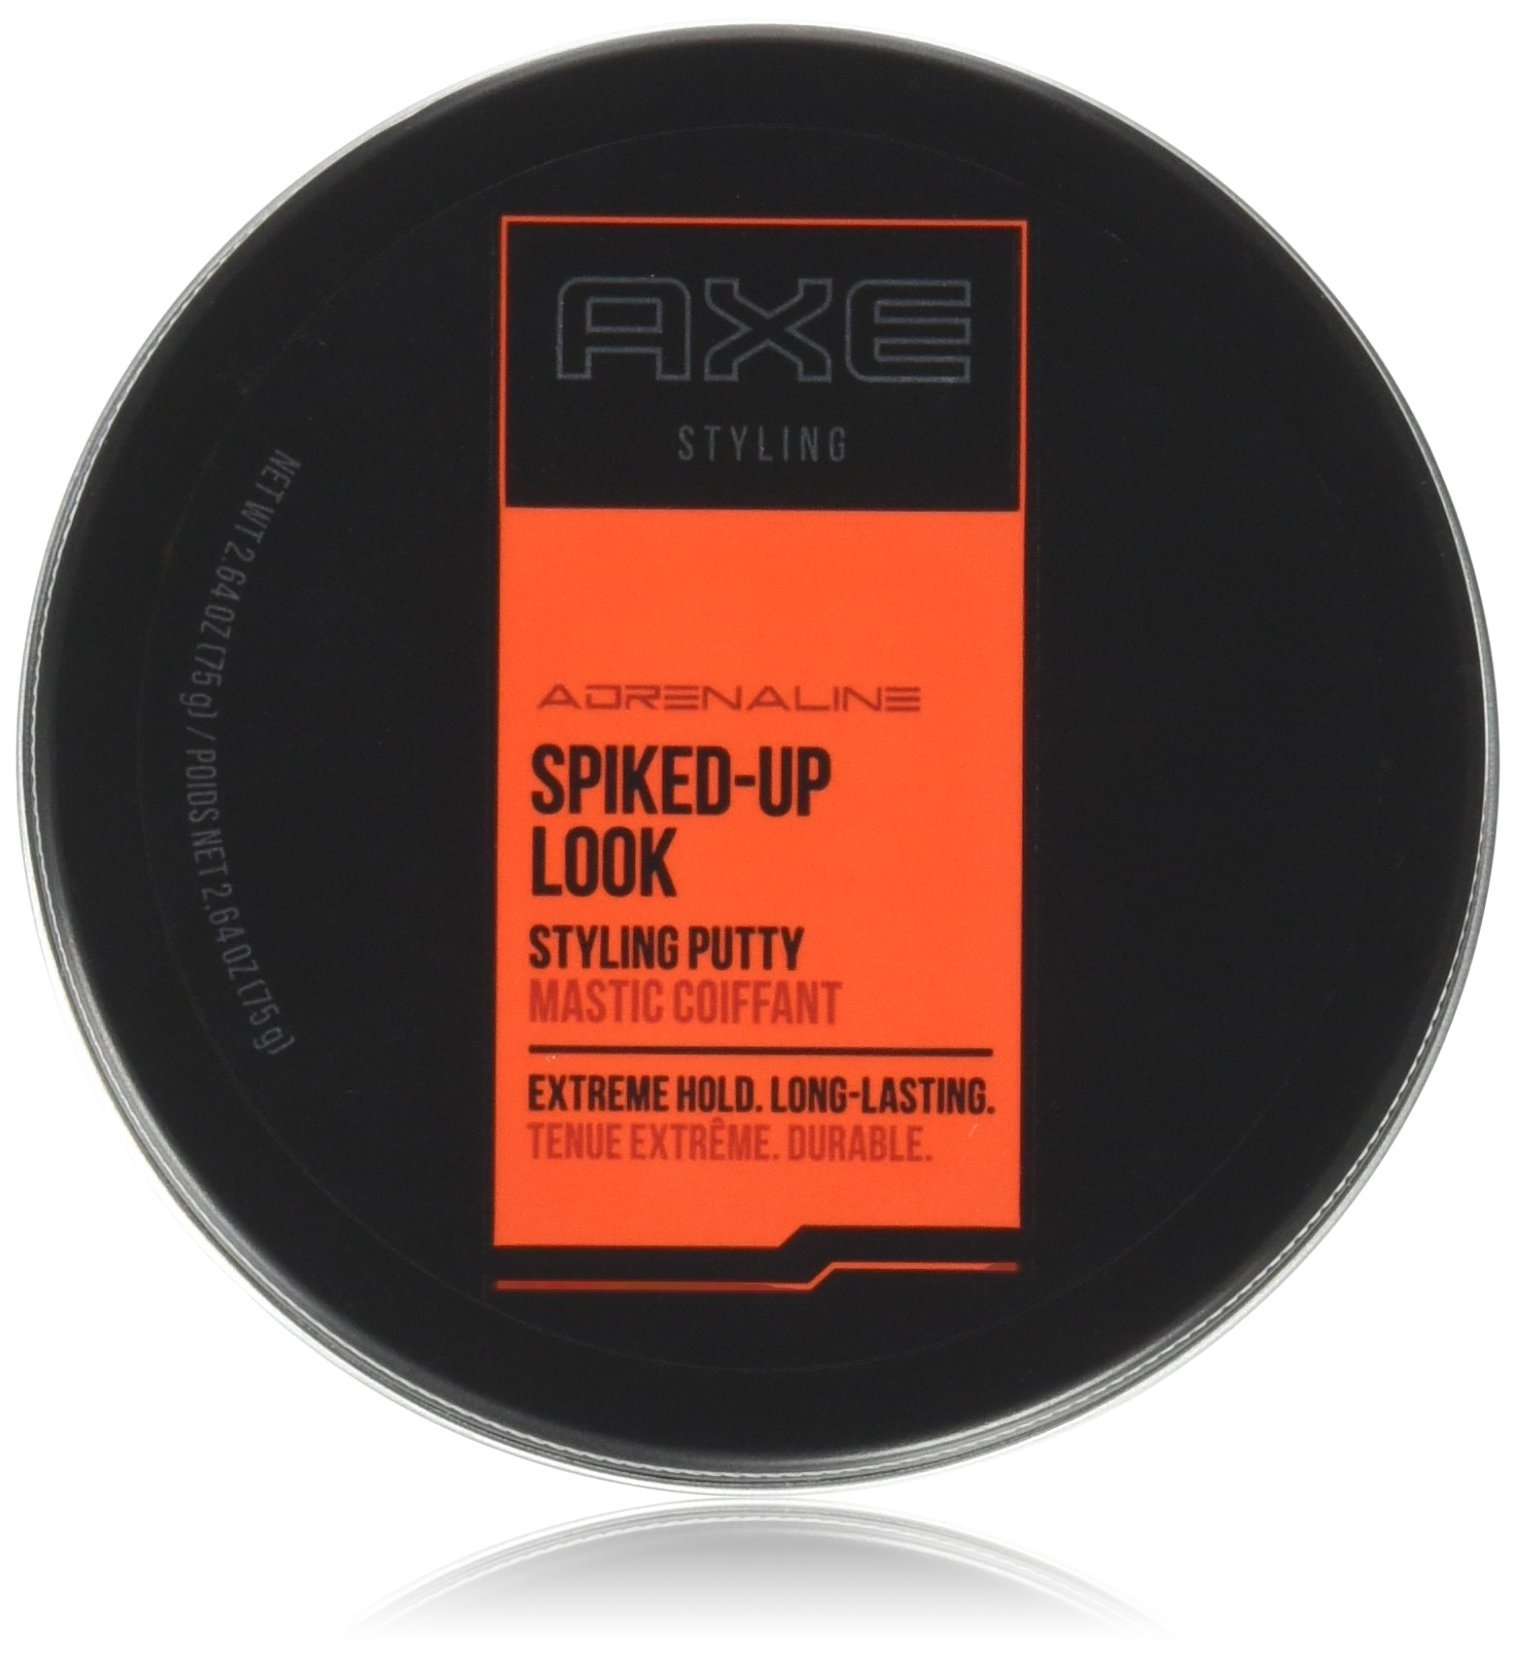 Axe Styling Spiked-Up Look Putty 2.64 Oz (Pack of 2)